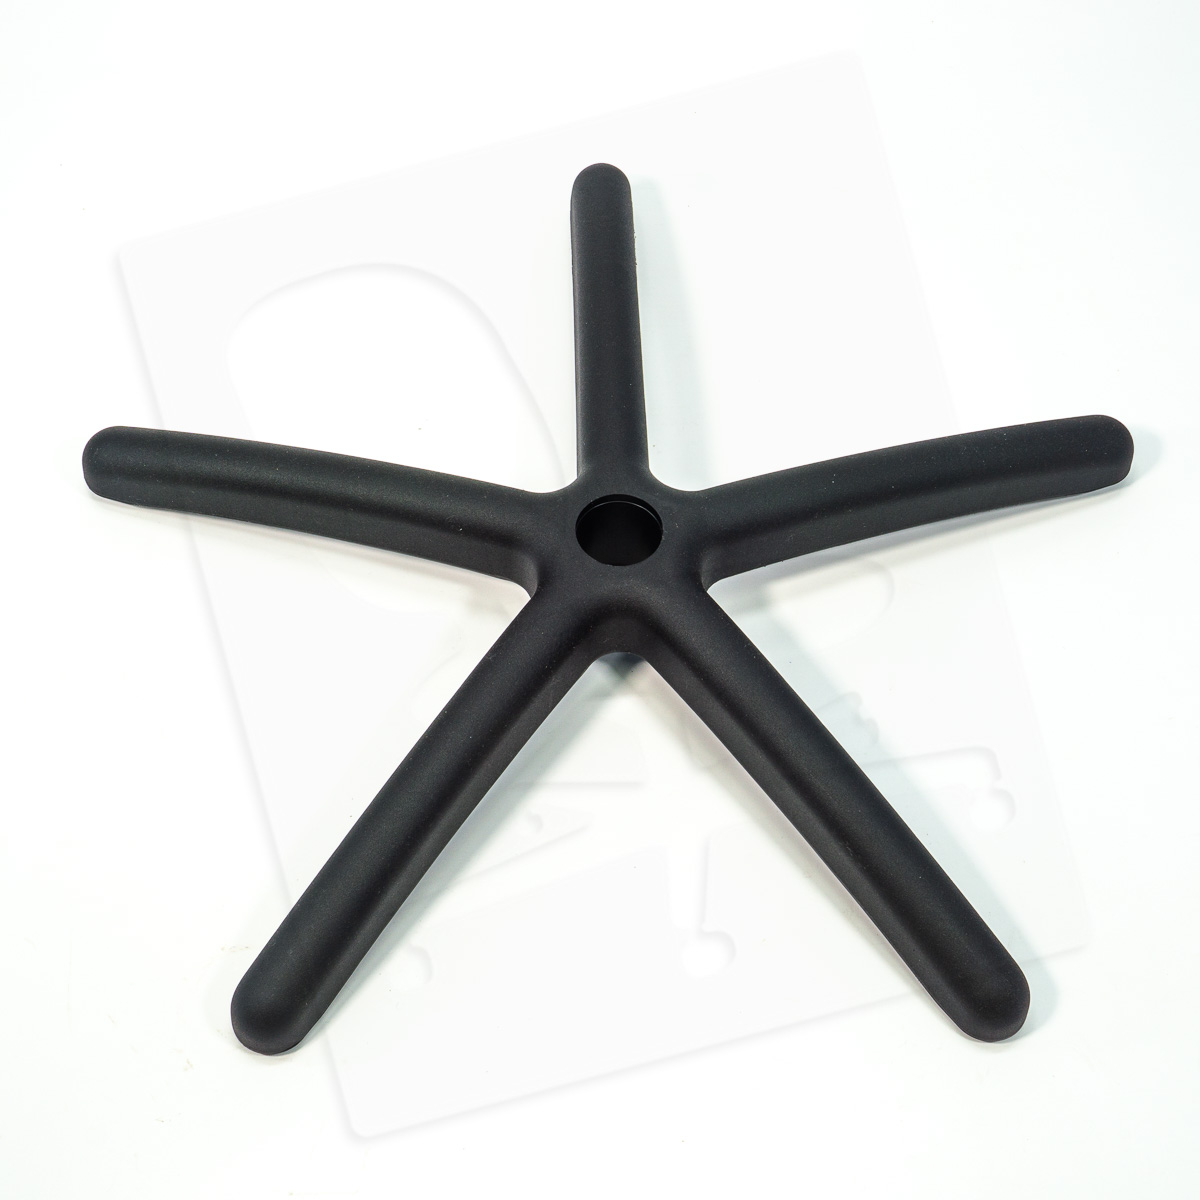 Crandall Office Furniture Aftermarket 28 inch Nylon Office hair Base 0001